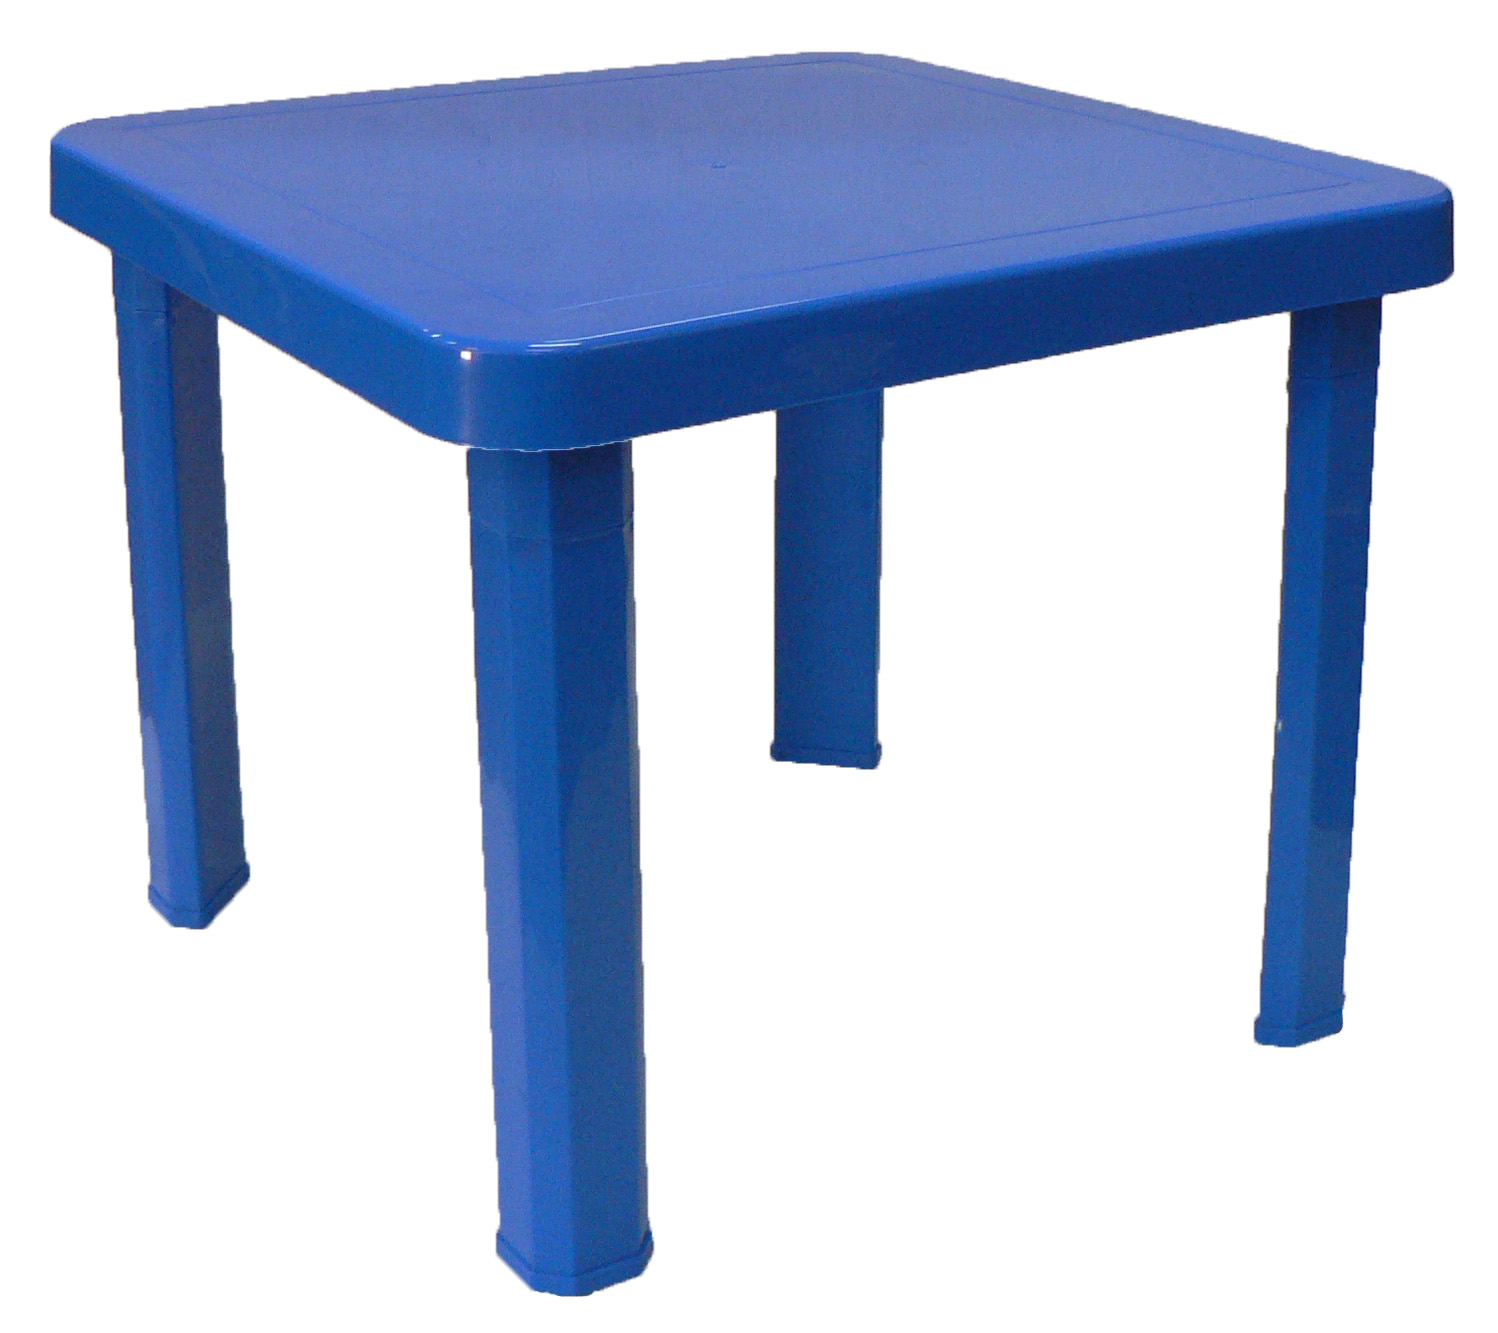 Childrens Plastic Table - Blue